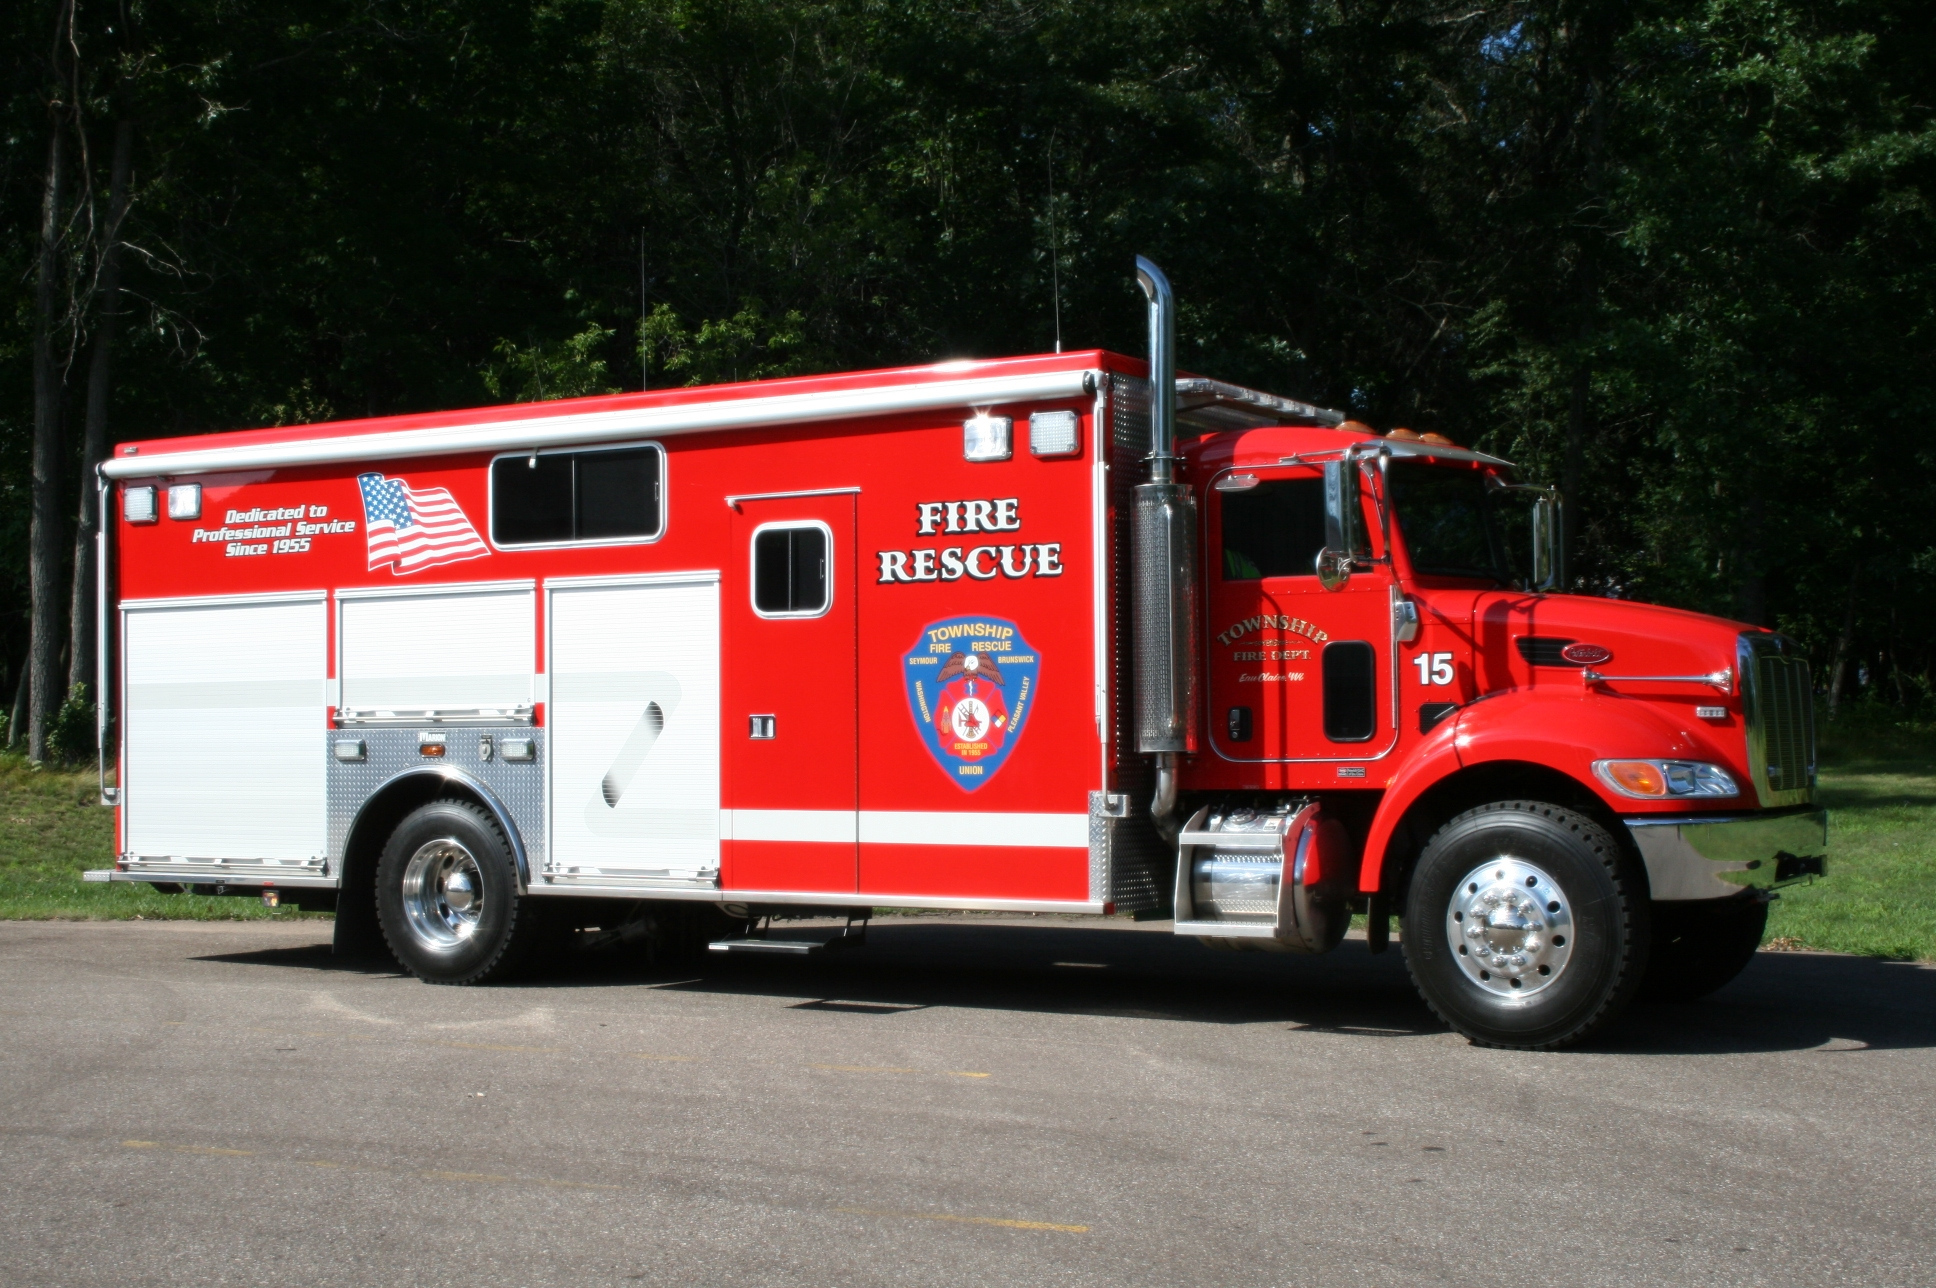 Seymore Township Fire and Rescue #15